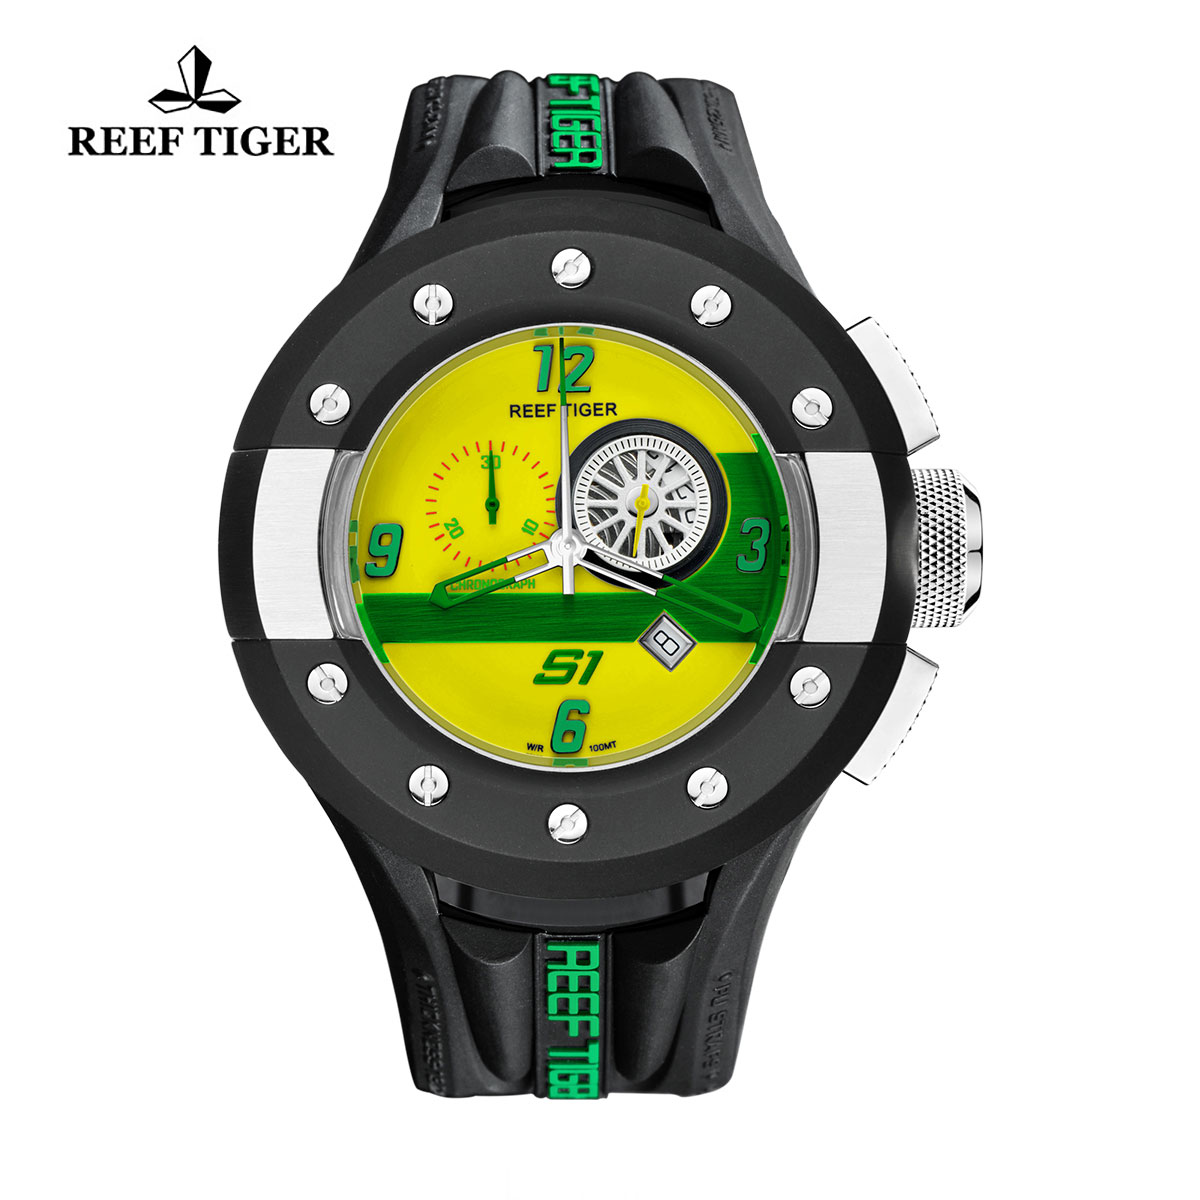 Reef Tiger Rally S1 Casual Watch Stainless Steel Rubber Strap Yellow Dashboard Dial Quartz Watch RGA3027-BGBN